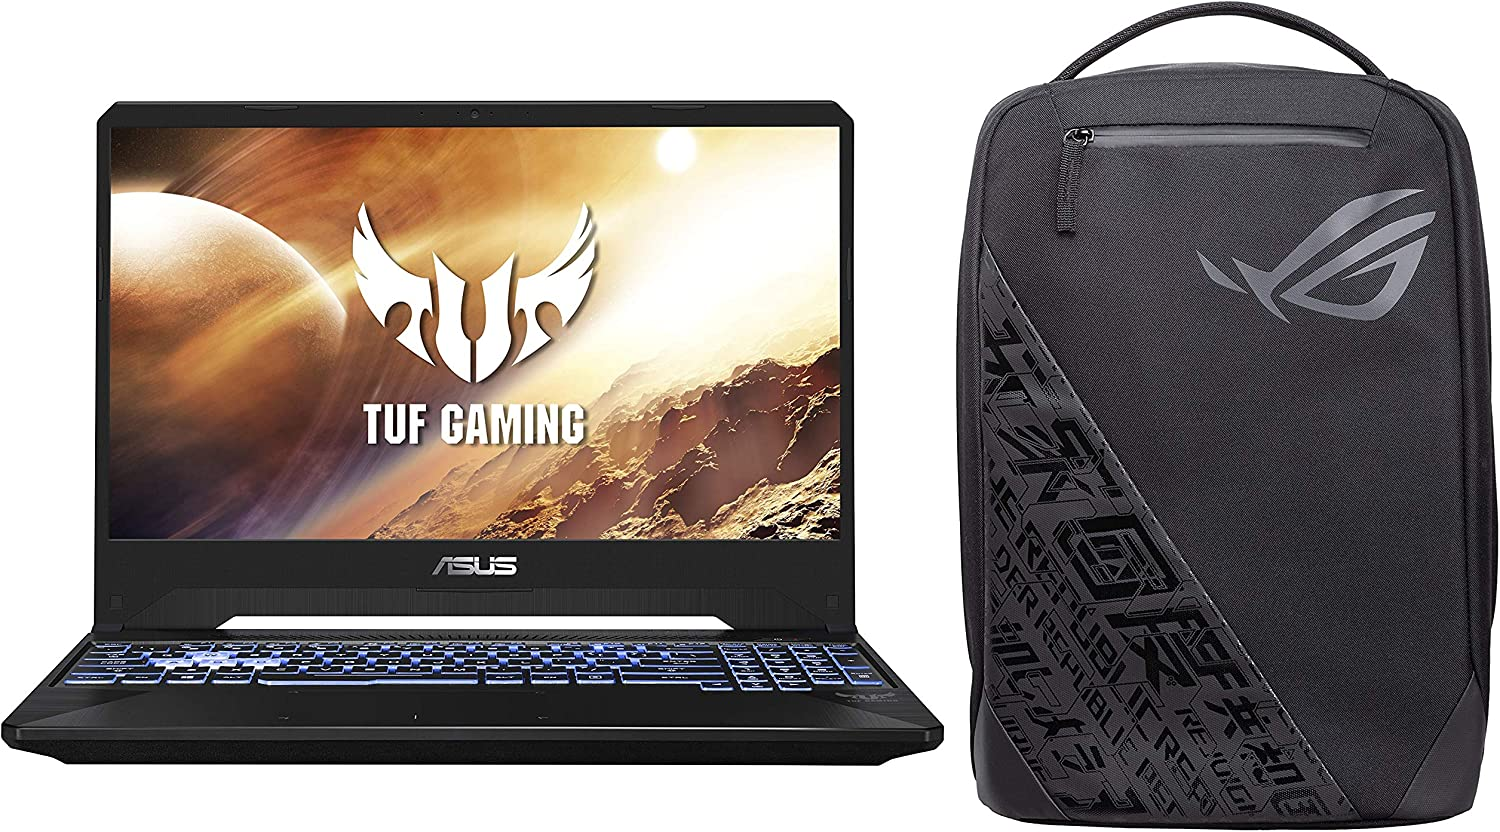 ASUS TUF Gaming FX505DT 15.6-inch FHD Laptop, Ryzen 5 3550H, GTX 1650 4GB GDDR5 Graphics (8GB RAM/1TB HDD + 256GB NVMe SSD/Windows 10/Stealth Black/2.20 Kg), FX505DT-BQ596T